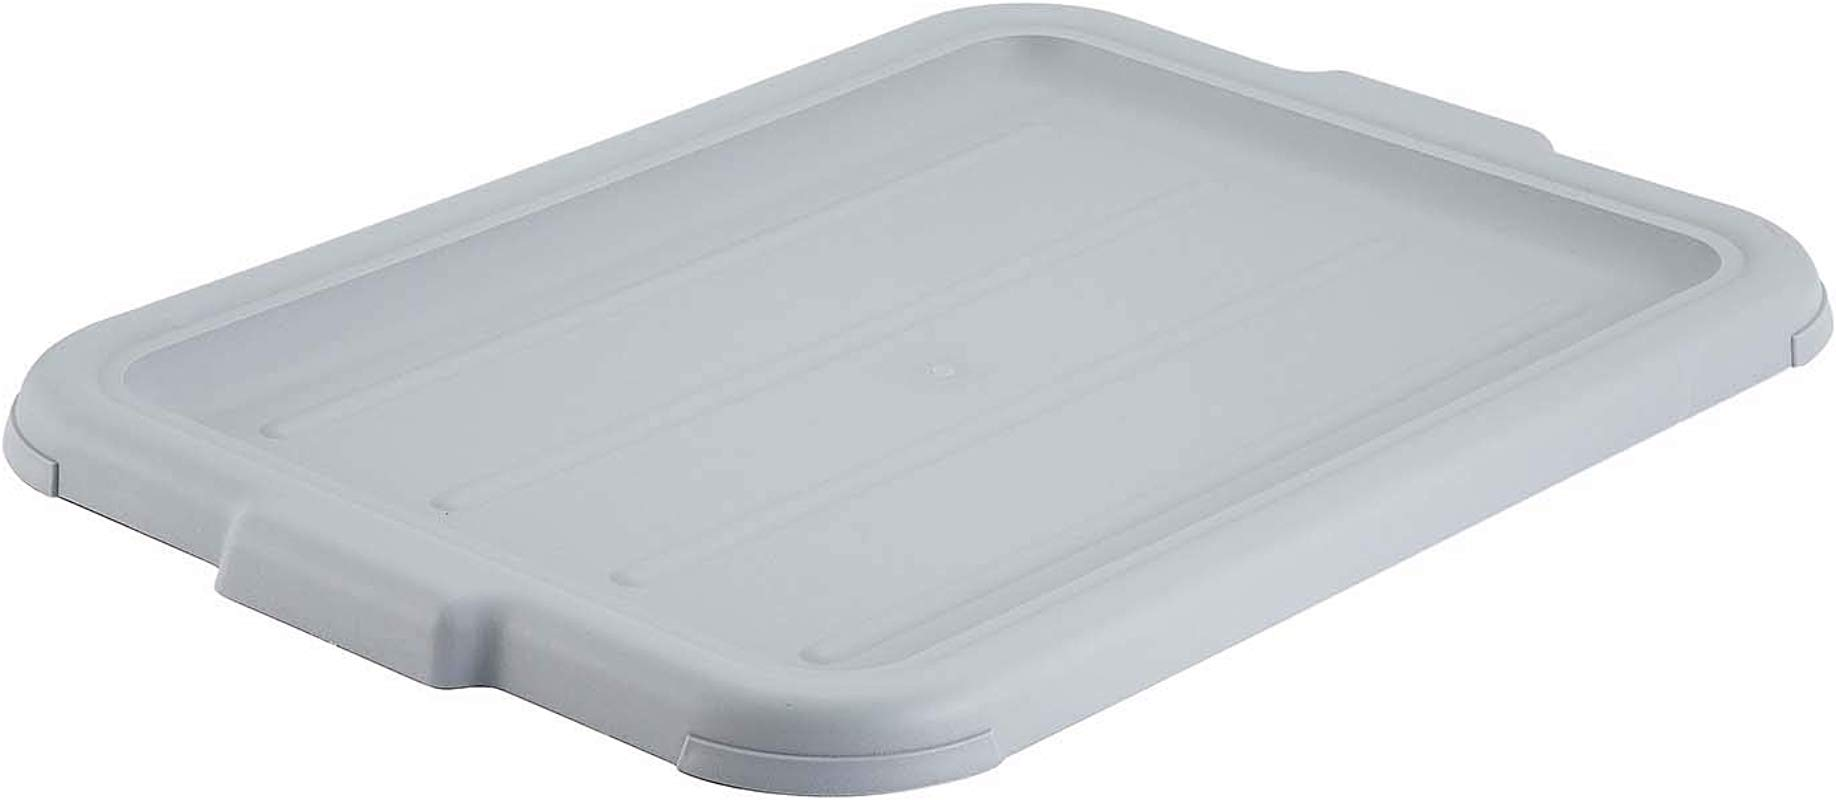 Winco Cover For PL 5G PL 7G